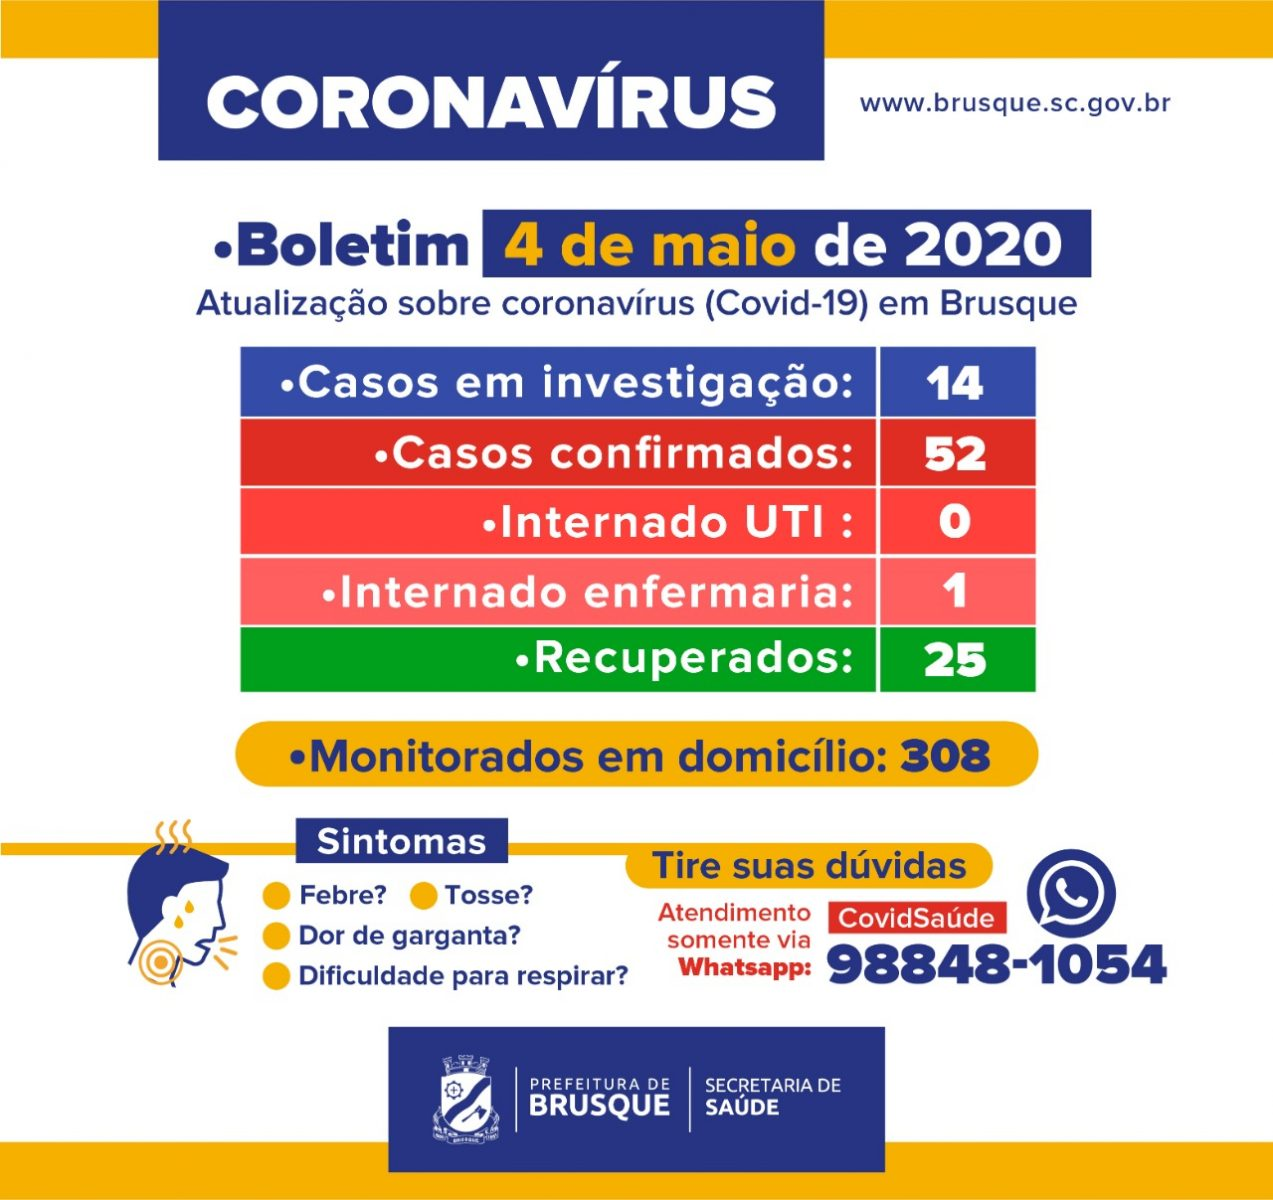 Brusque mantêm 52 casos confirmados do novo coronavírus